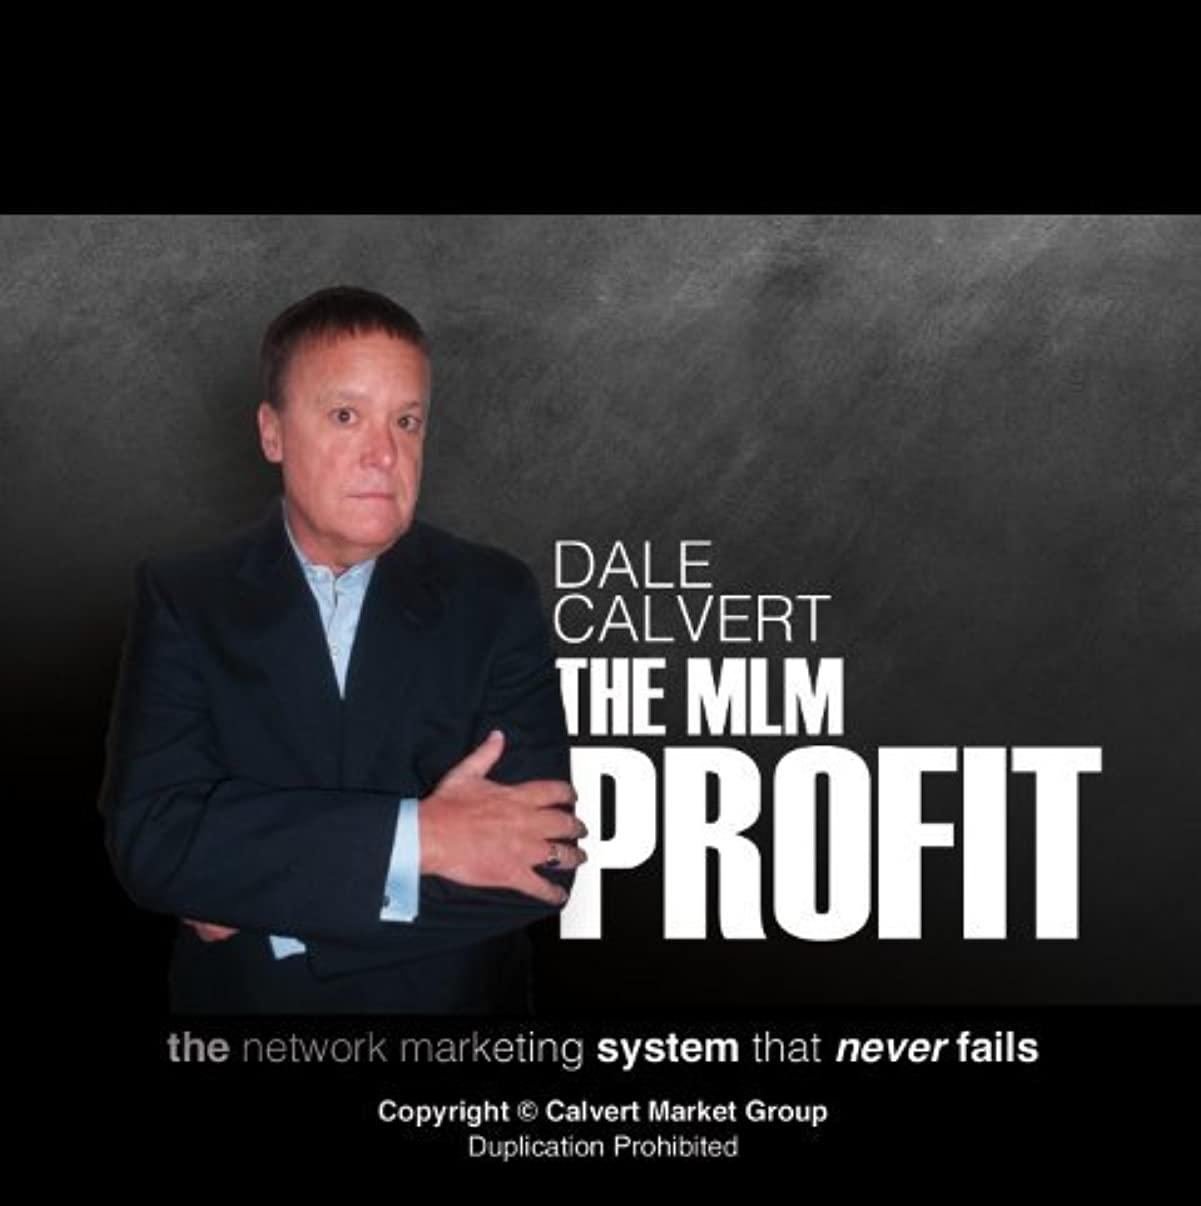 Network Marketing Training CD - The Network Marketing Success System That Never Fails Dale Calvert The MLM Profit